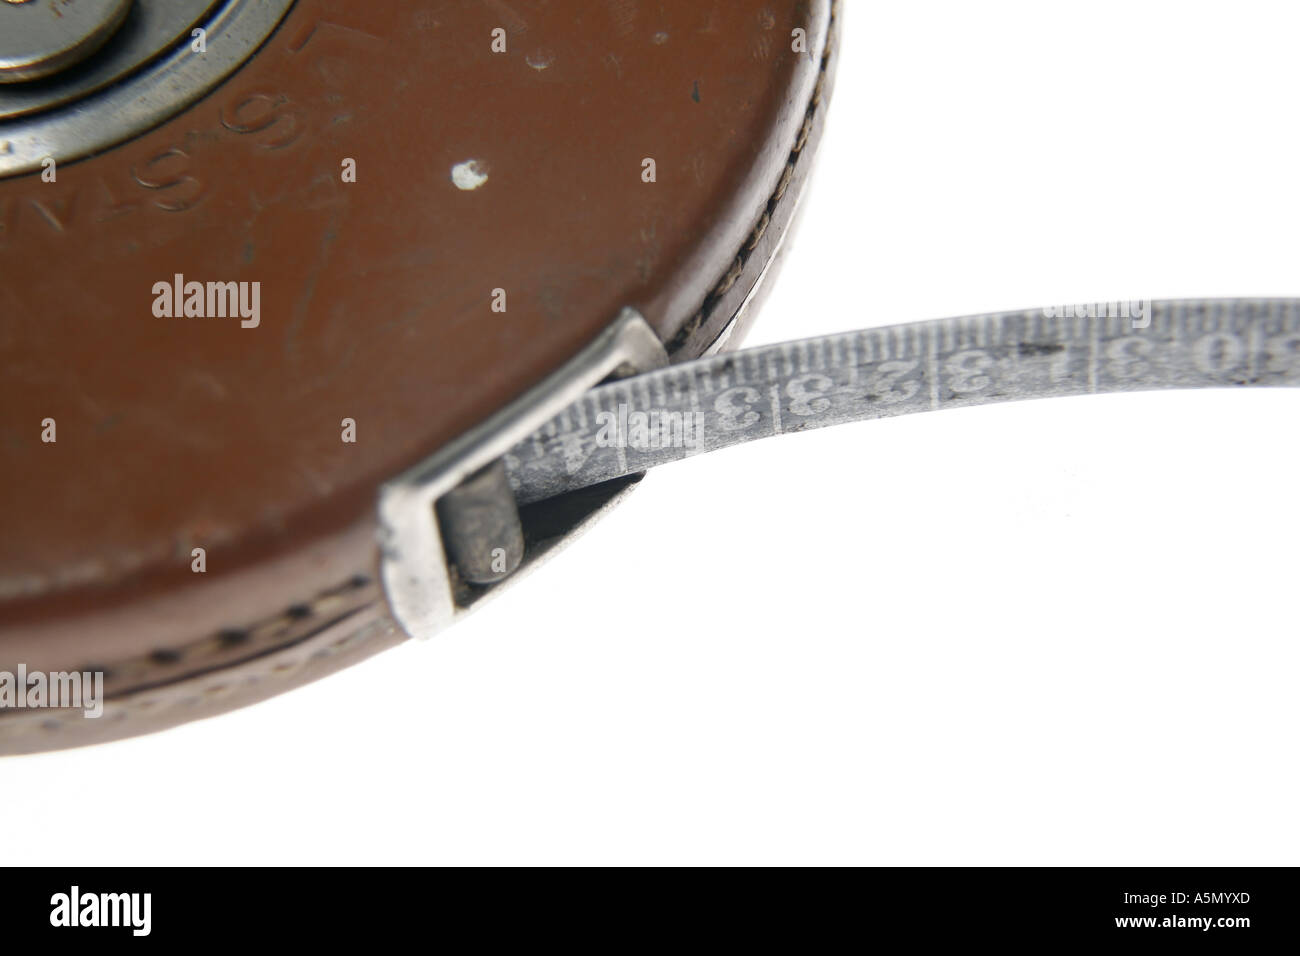 Studio shot of old leather bound tape measure, using a shallow depth of field and focused on the number 32 - Stock Image